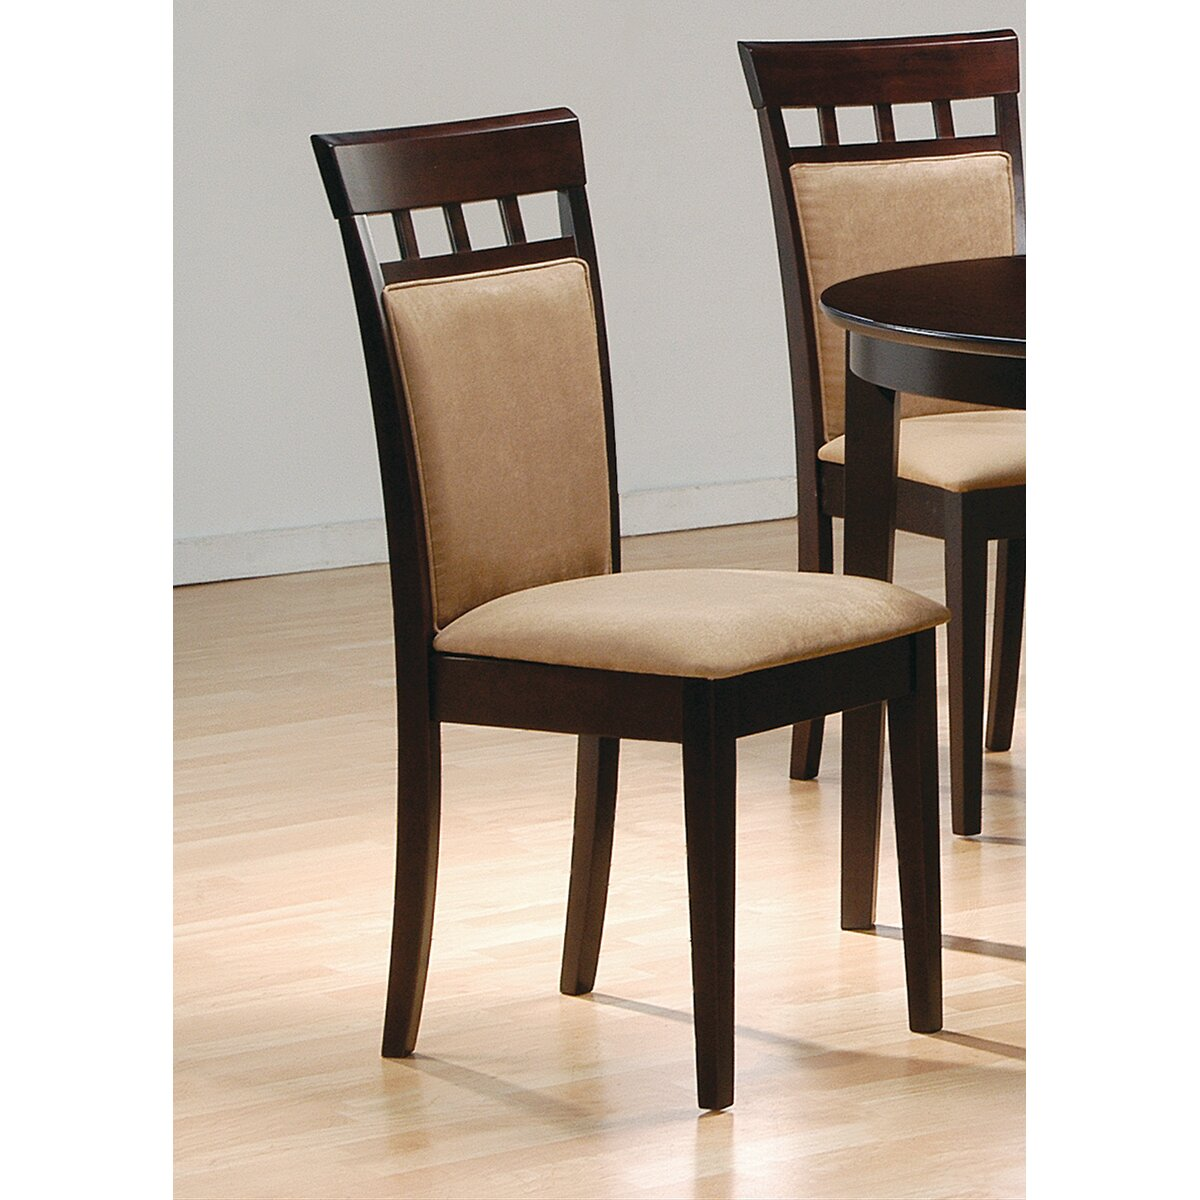 Charlton home zora cushion back side chair reviews wayfair - Cushioned dining room chairs ...